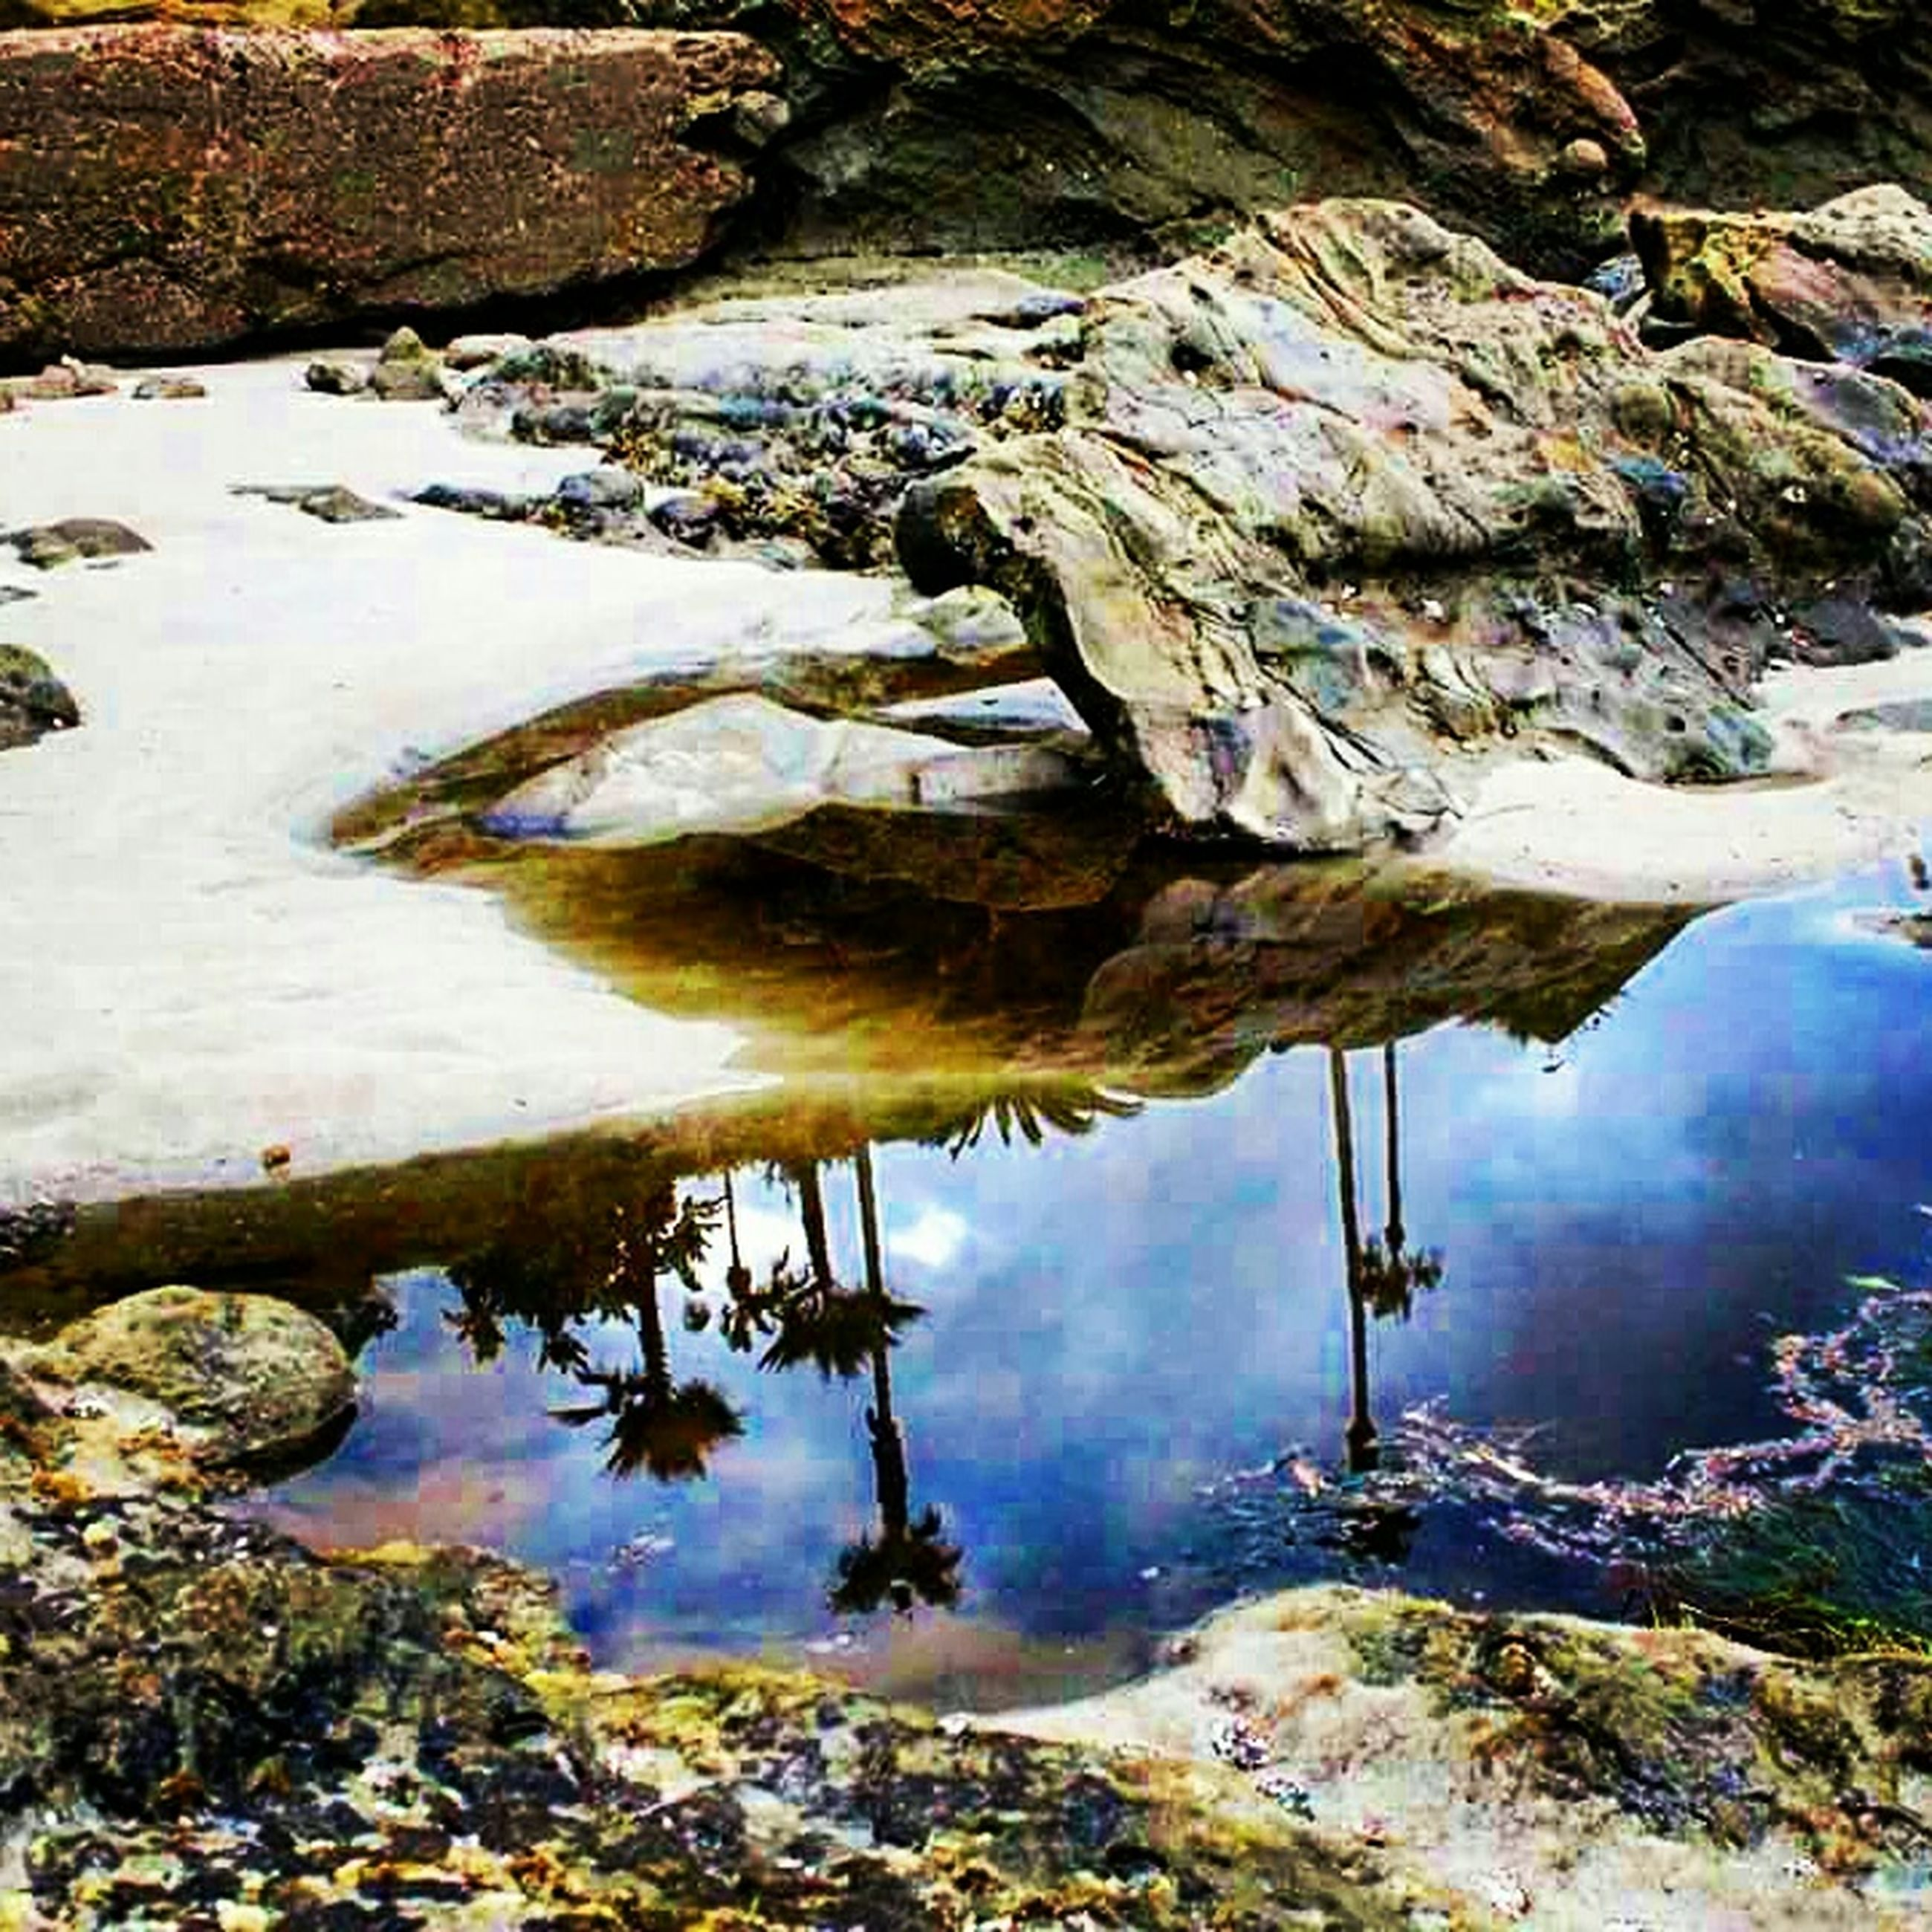 water, reflection, rock - object, lake, tranquility, tranquil scene, nature, stream, beauty in nature, scenics, river, standing water, rock, high angle view, day, stone - object, flowing water, outdoors, non-urban scene, idyllic